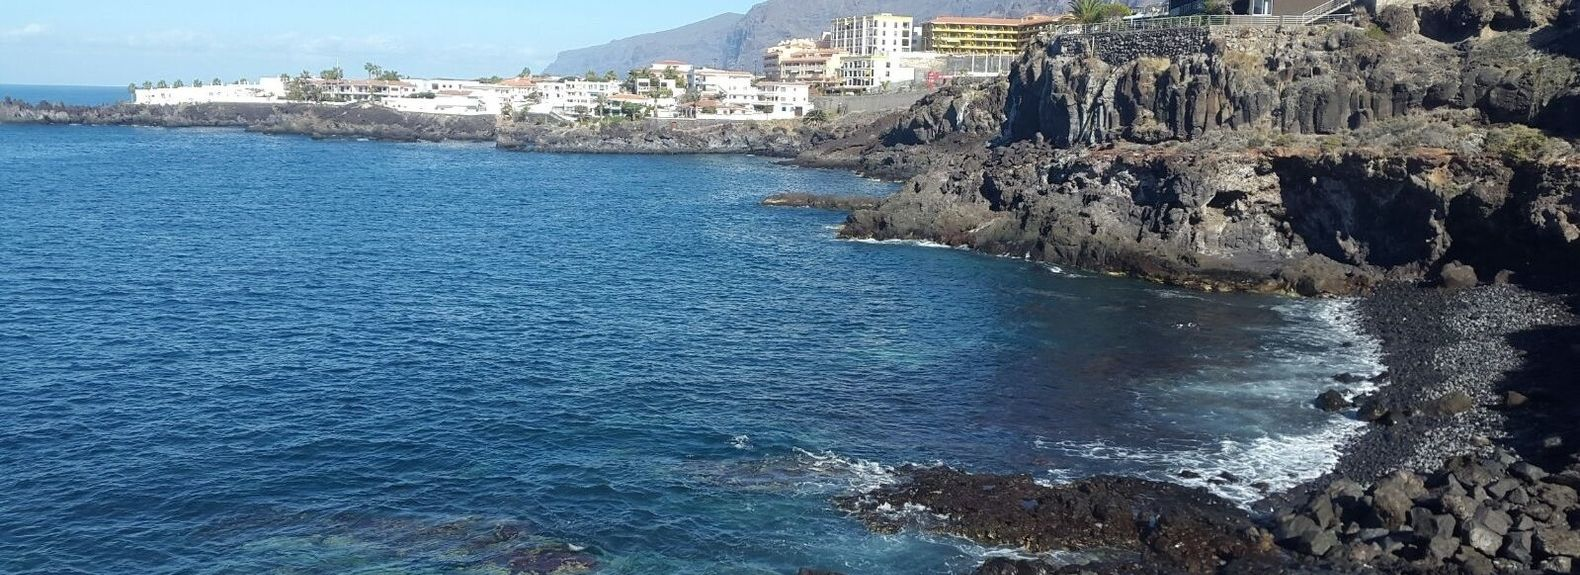 Arico, Canary Islands, Spain